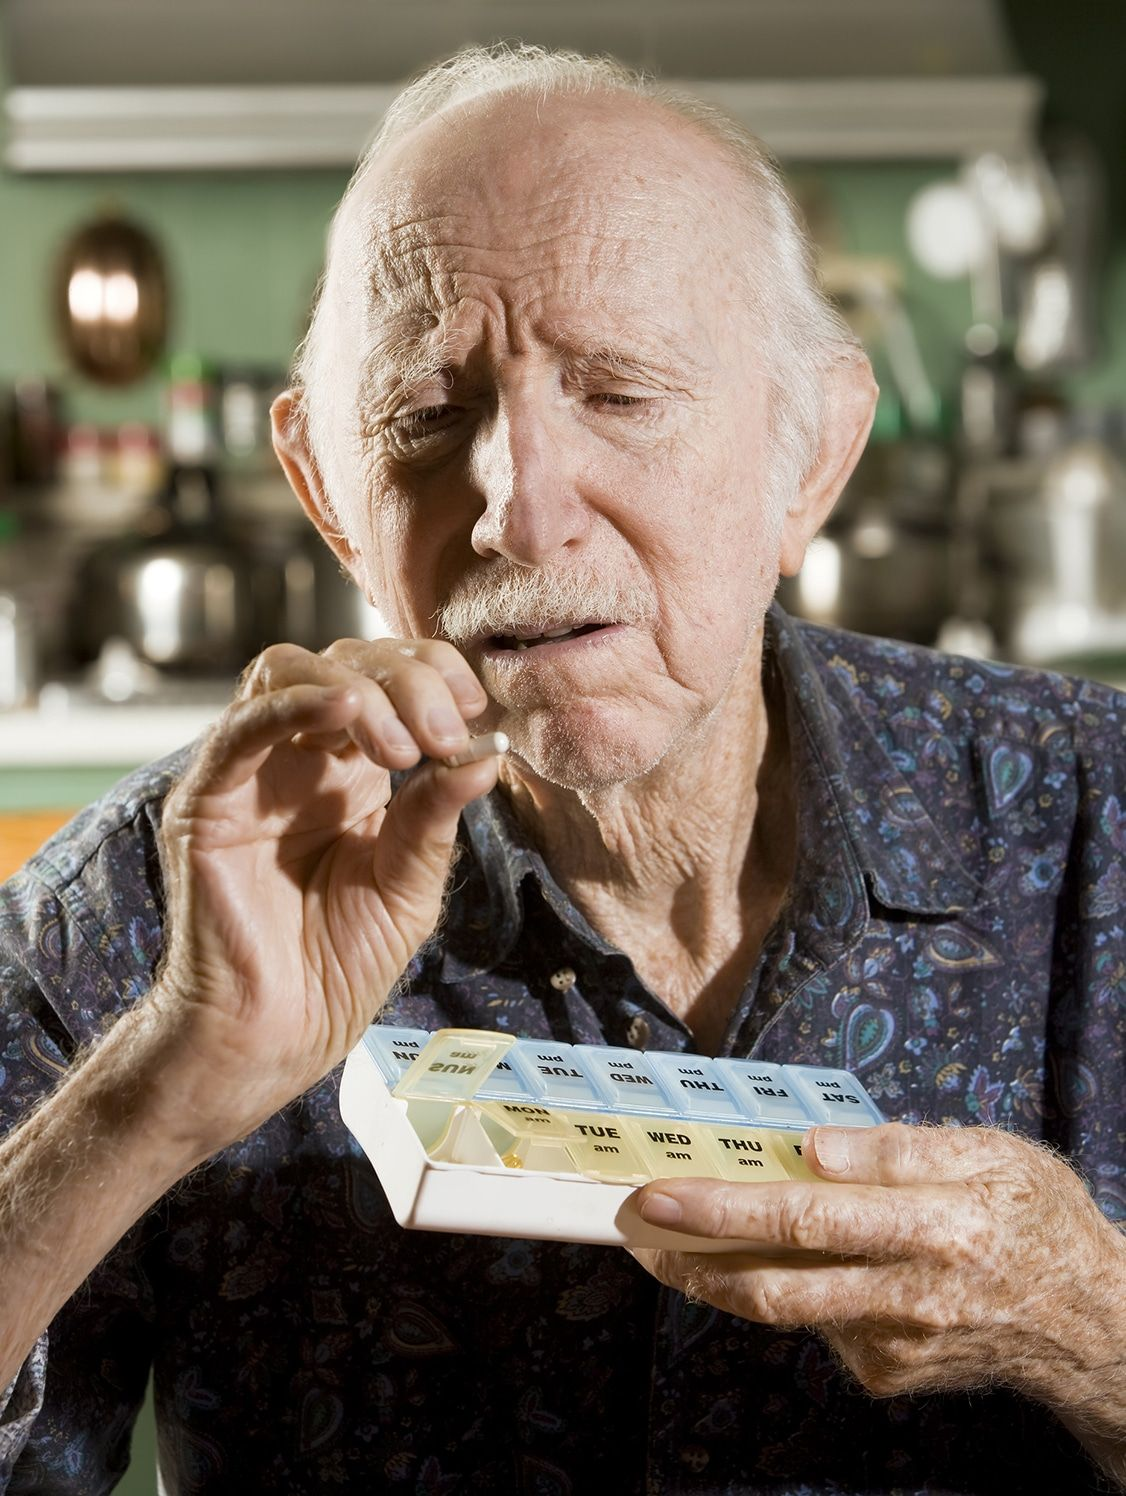 Pin On Addiction And Older Adults